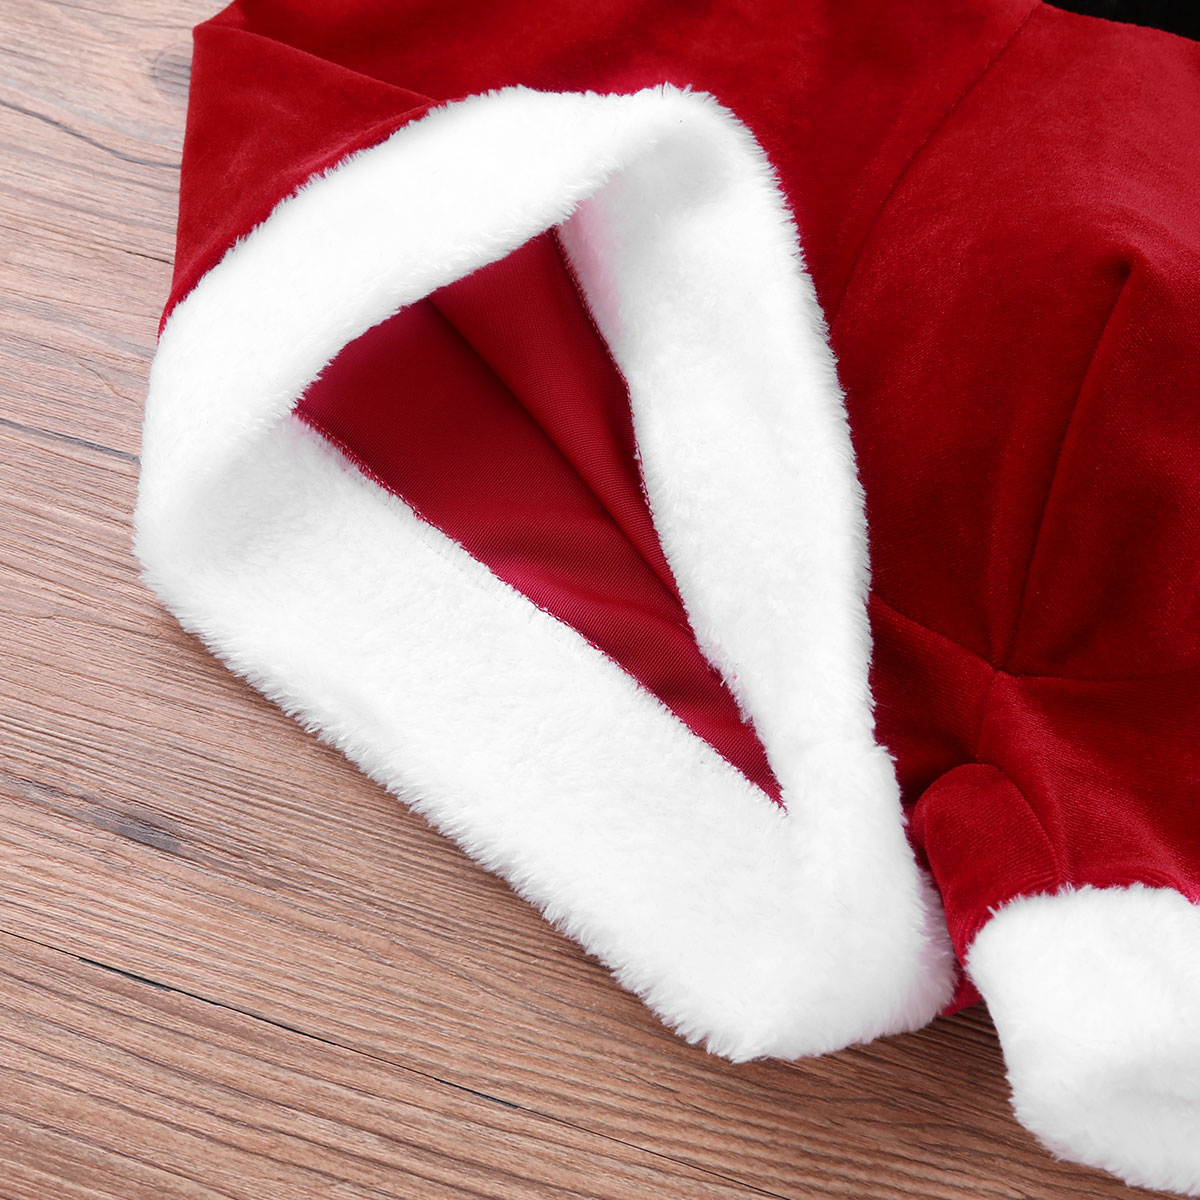 ddd223e65ad Aliexpress.com   Buy Mens Underwear Fairy Christmas Party Sexy Male Panties  Soft Velvet Santa Holiday Fancy Cosplay Costume Boxer Shorts Underwear from  ...